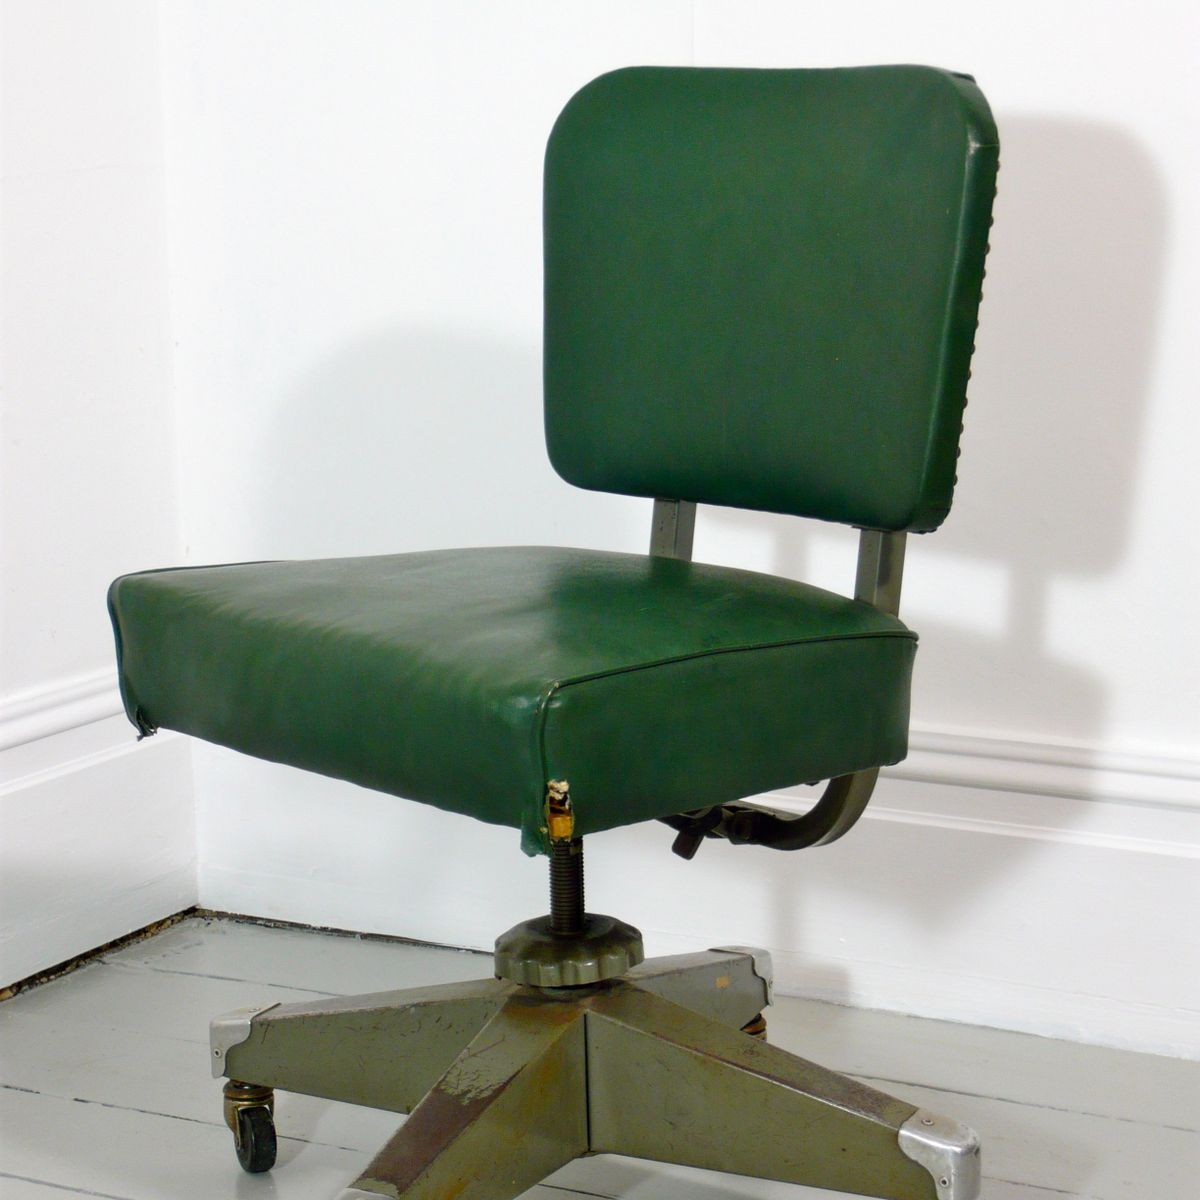 Vintage Swivel Chair Vintage Swivel Desk Chair From Remington Rand For Sale At